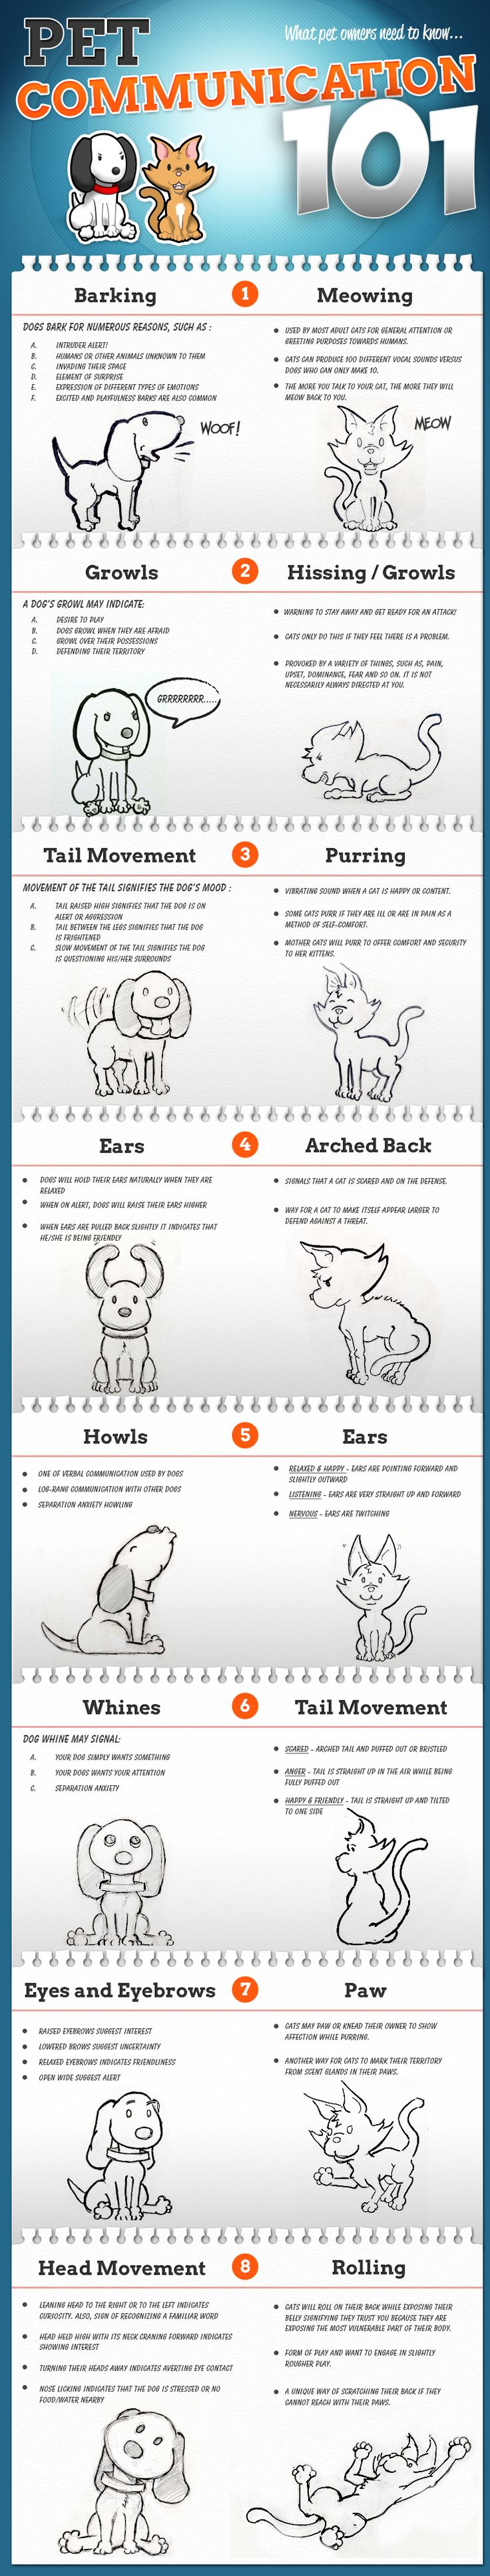 How does your Pet communicate with you? Learn about different signs to understand their needs better. Talk with your pet today! #dogcommunication #catcommunication